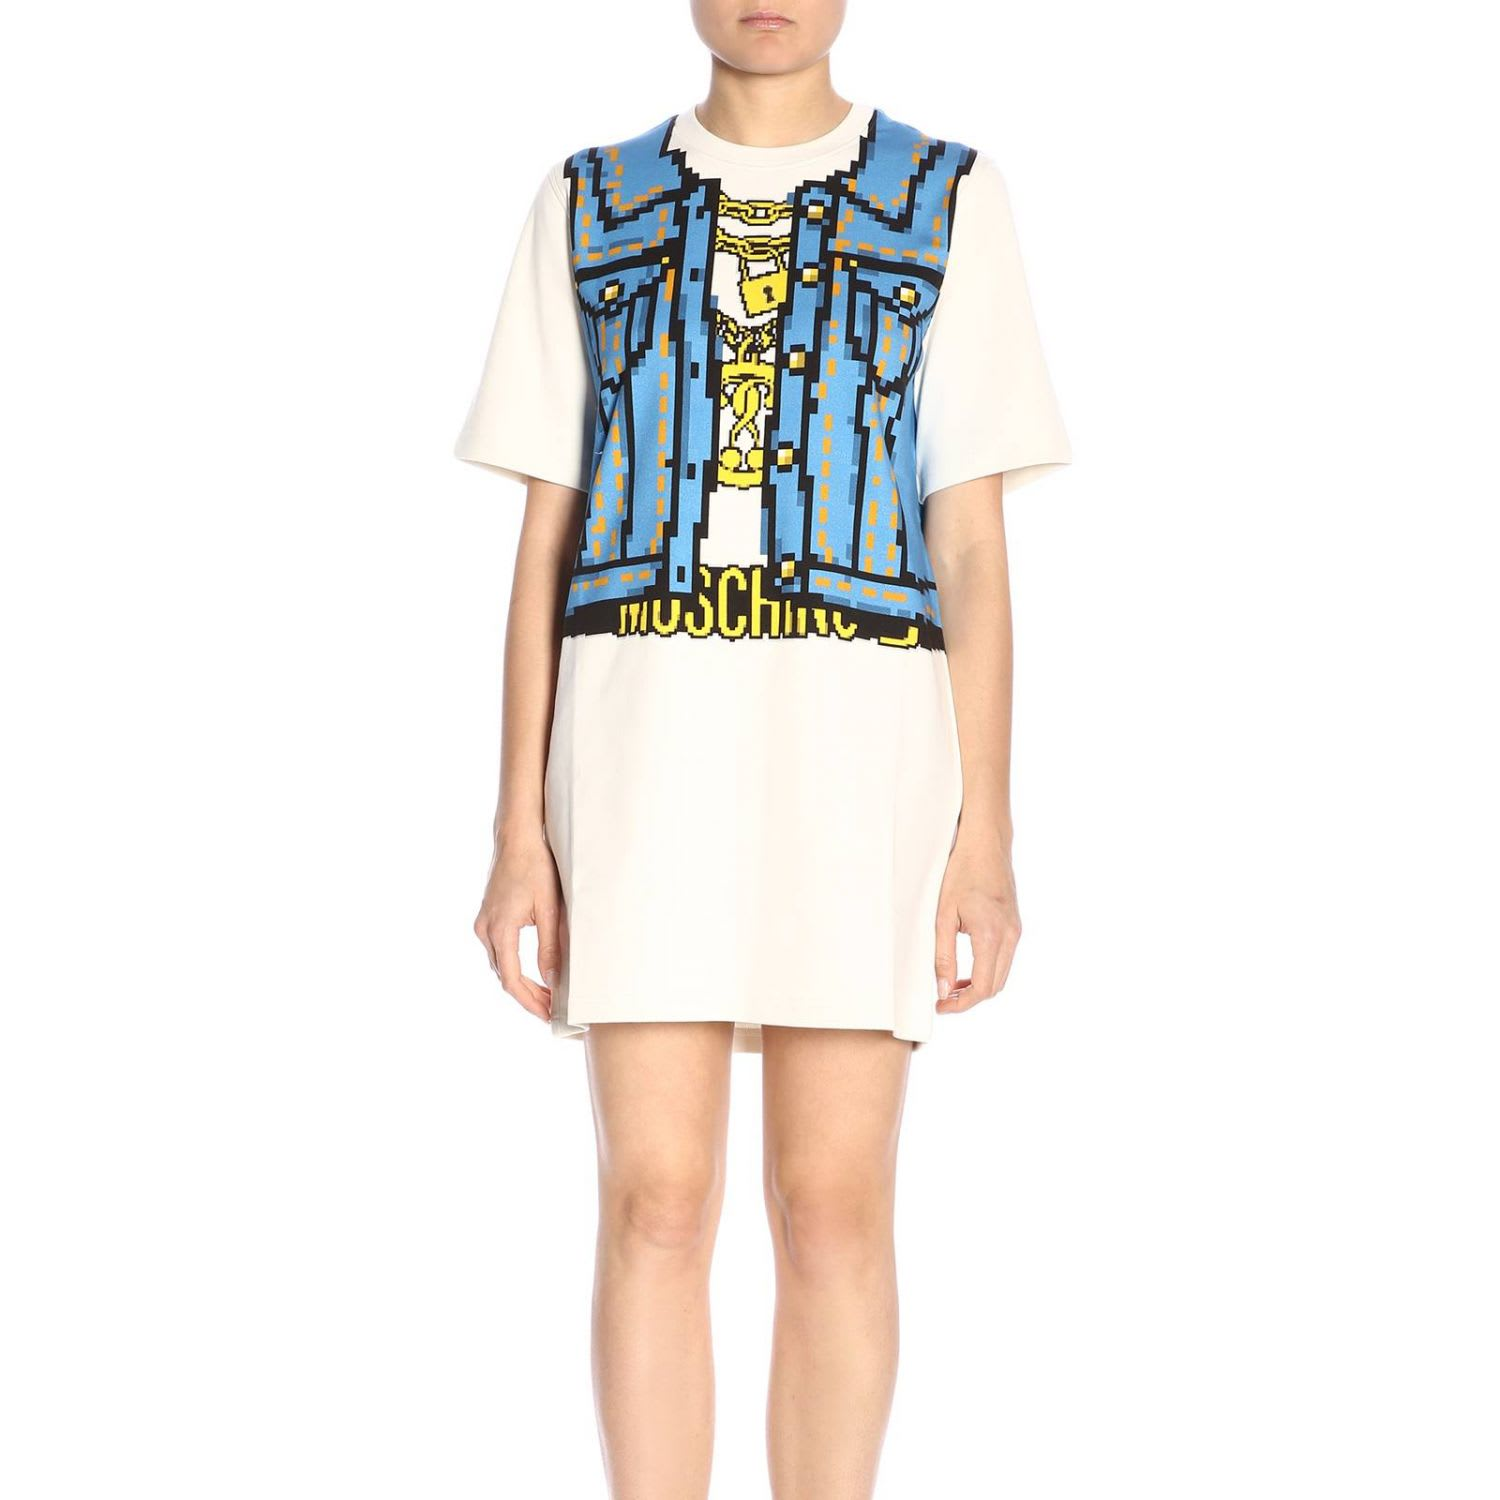 Moschino Dress Dress Women Moschino